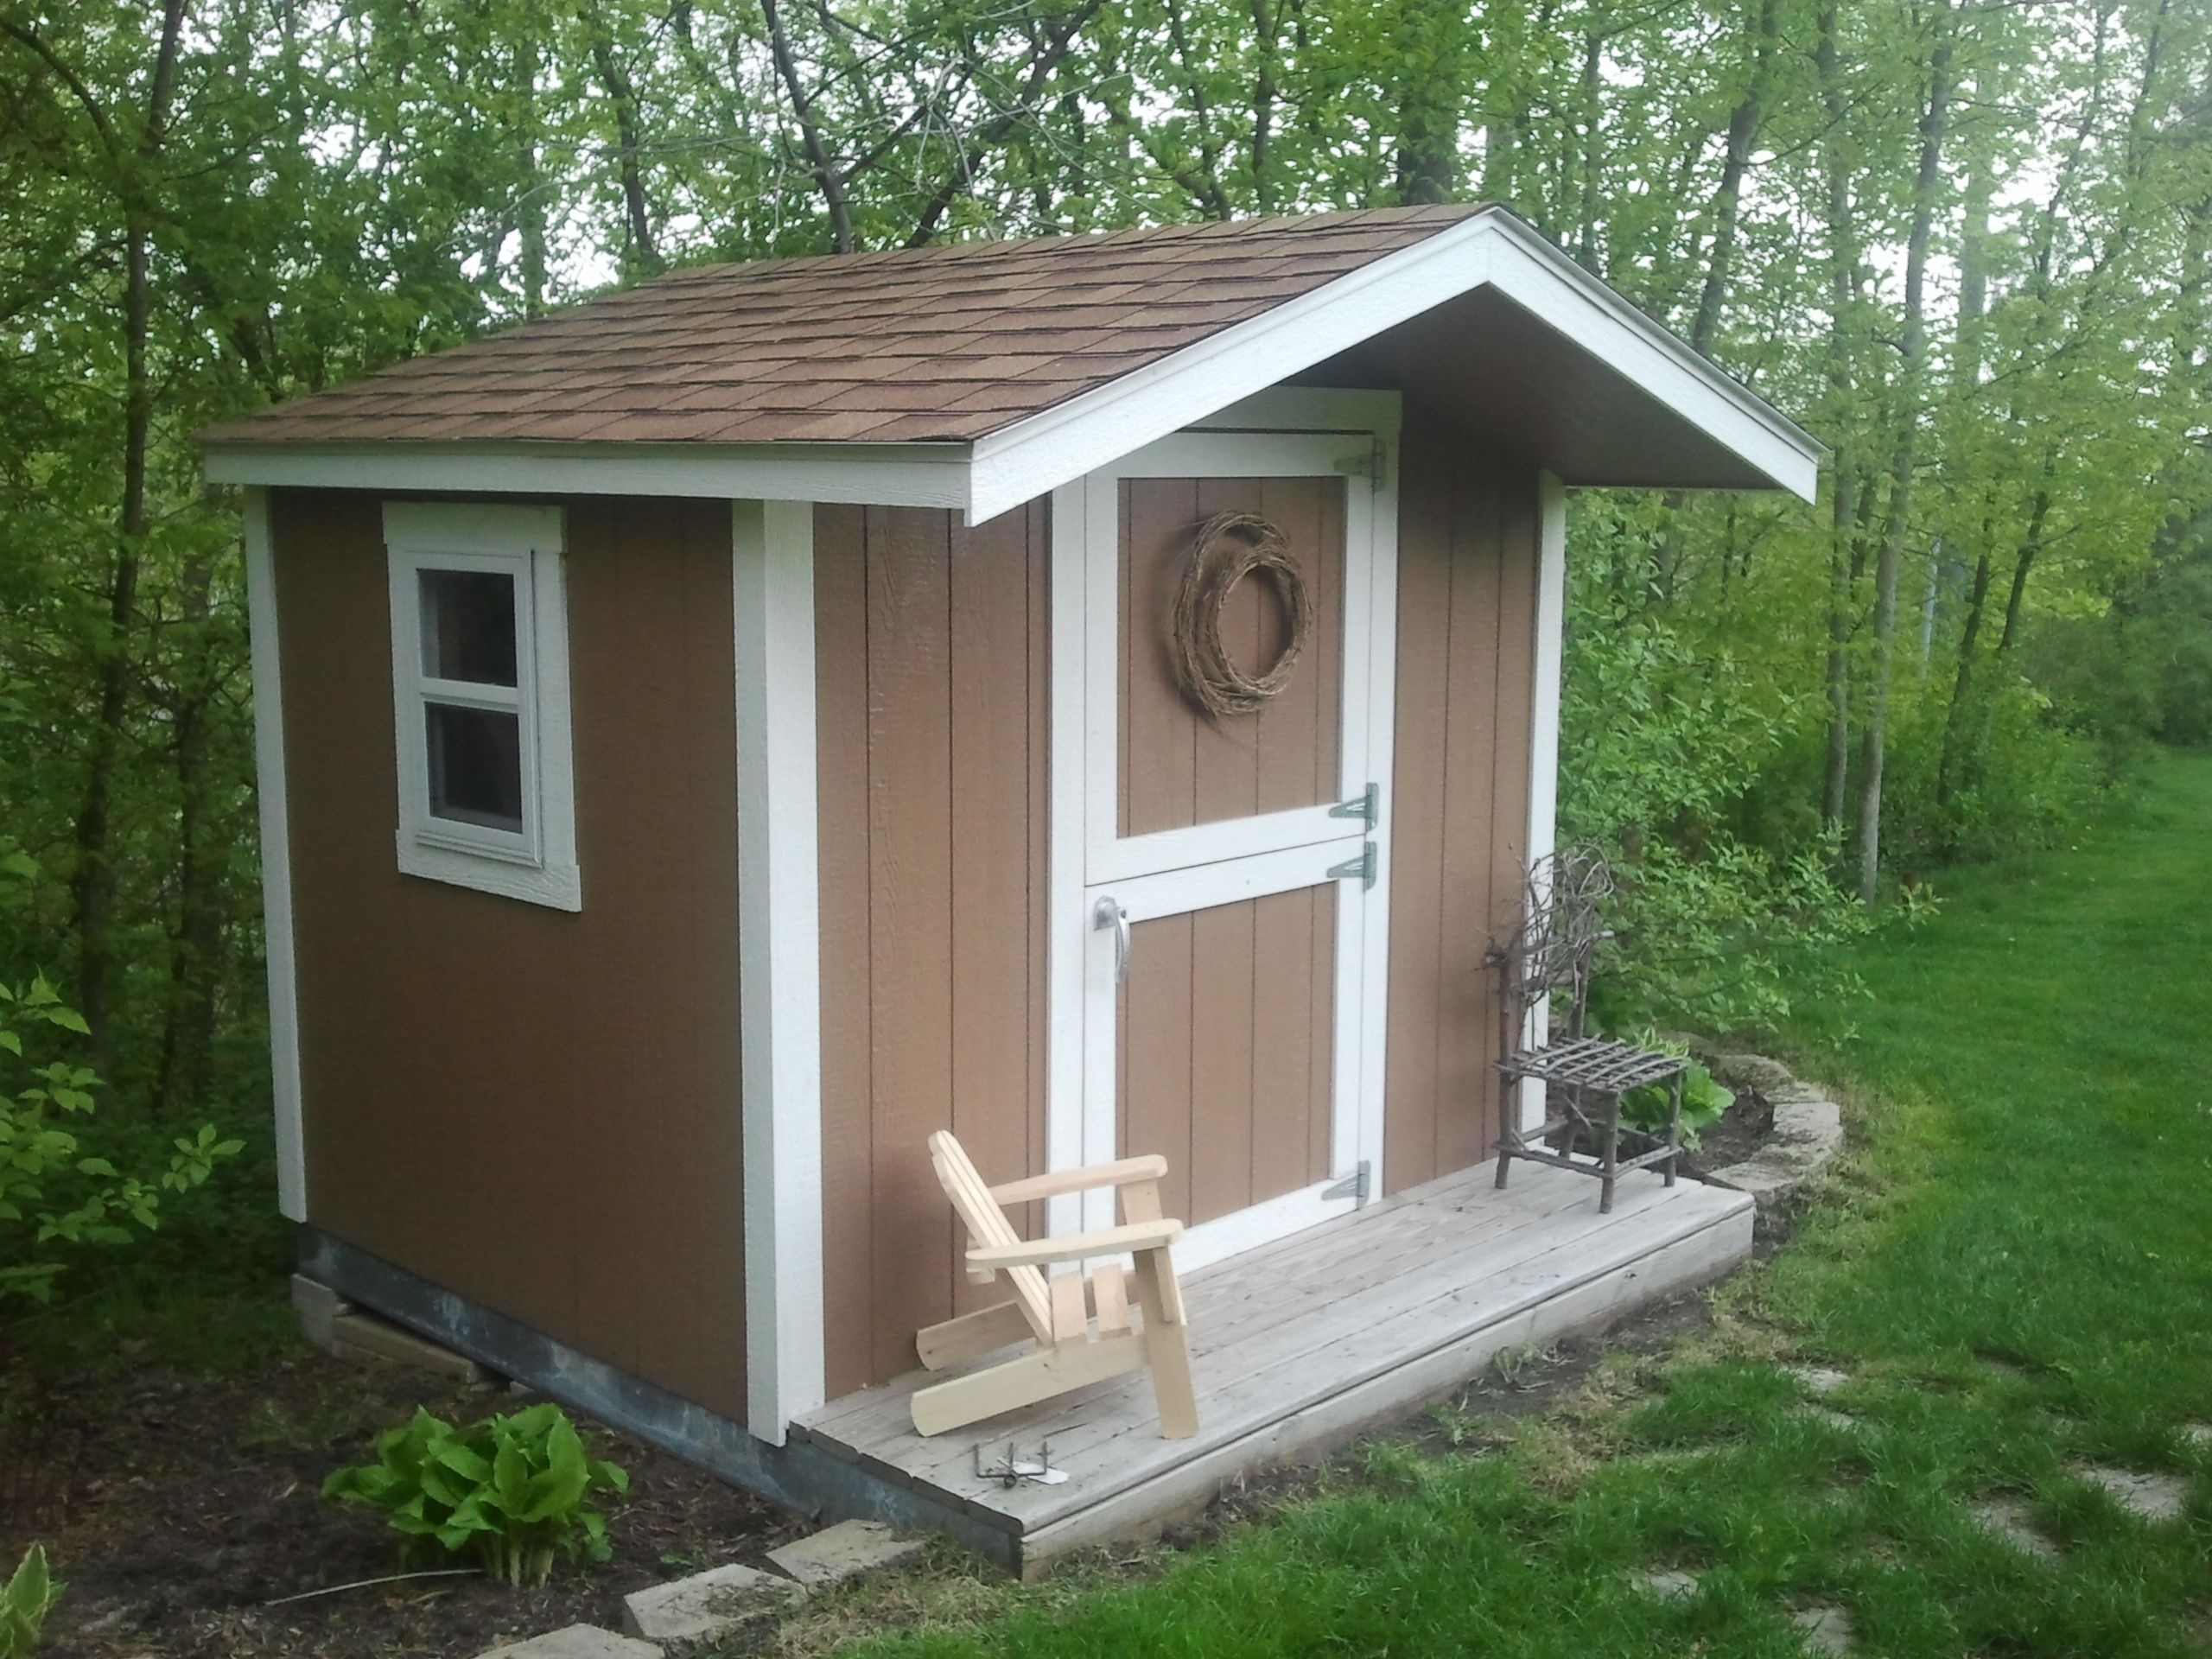 Tuff Shed Playhouse ordered at Home Depot